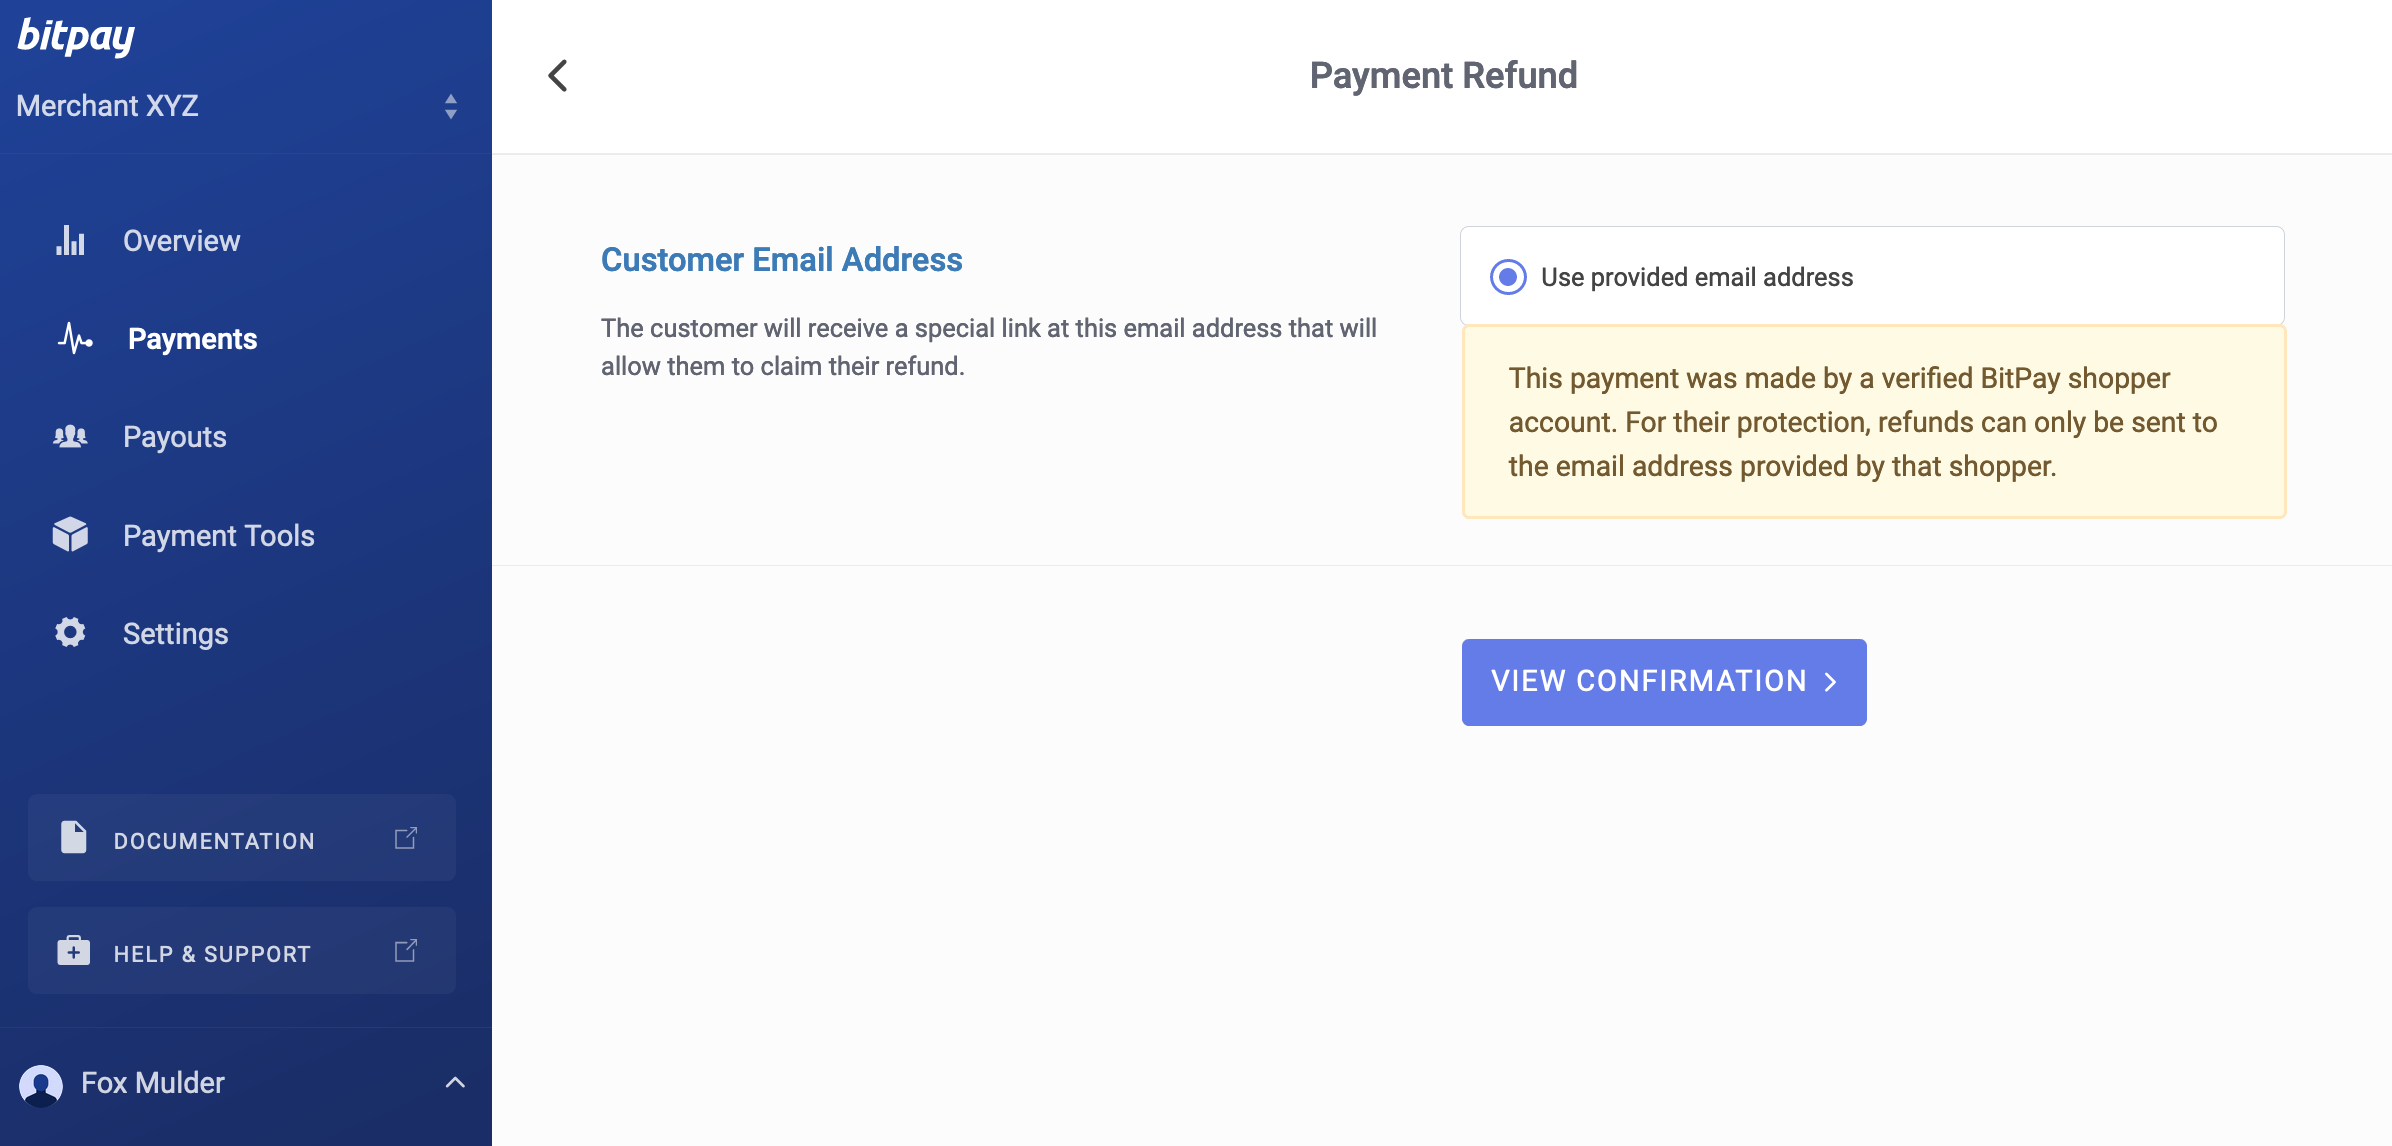 dashboard_payment_details_refund_bitpayID.png